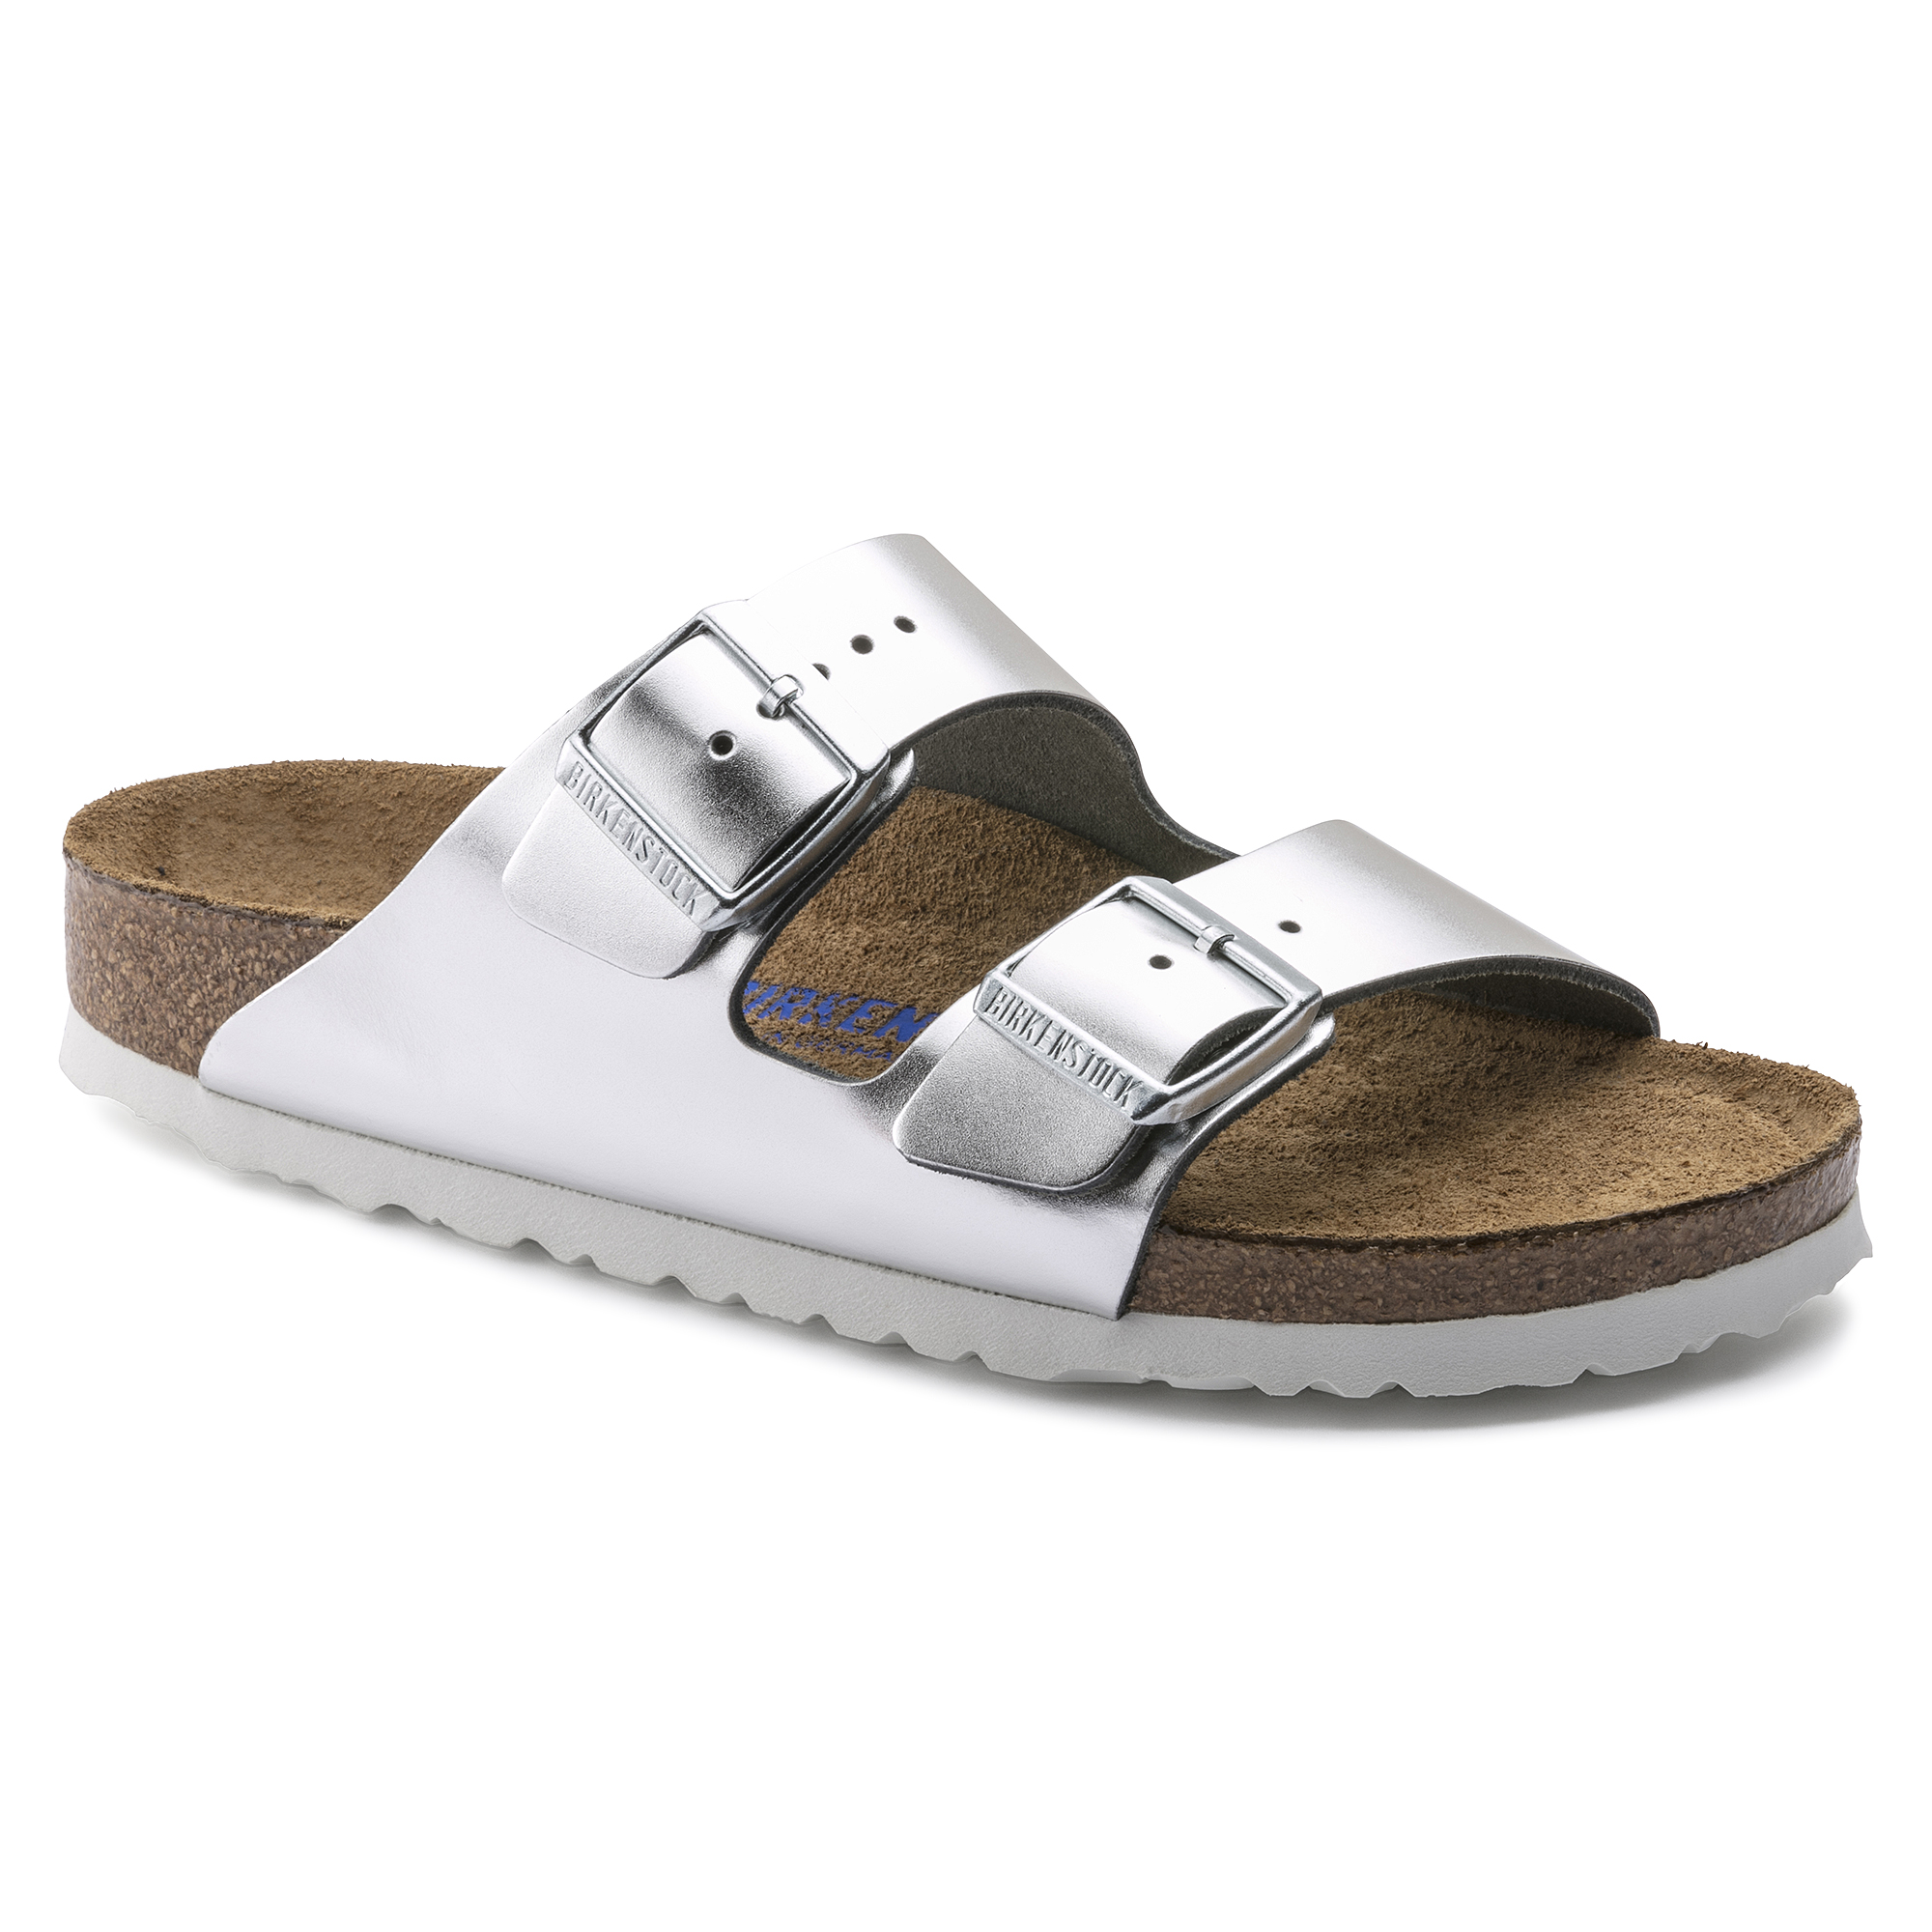 Gizeh Soft Footbed Sandals in Metallic Silver